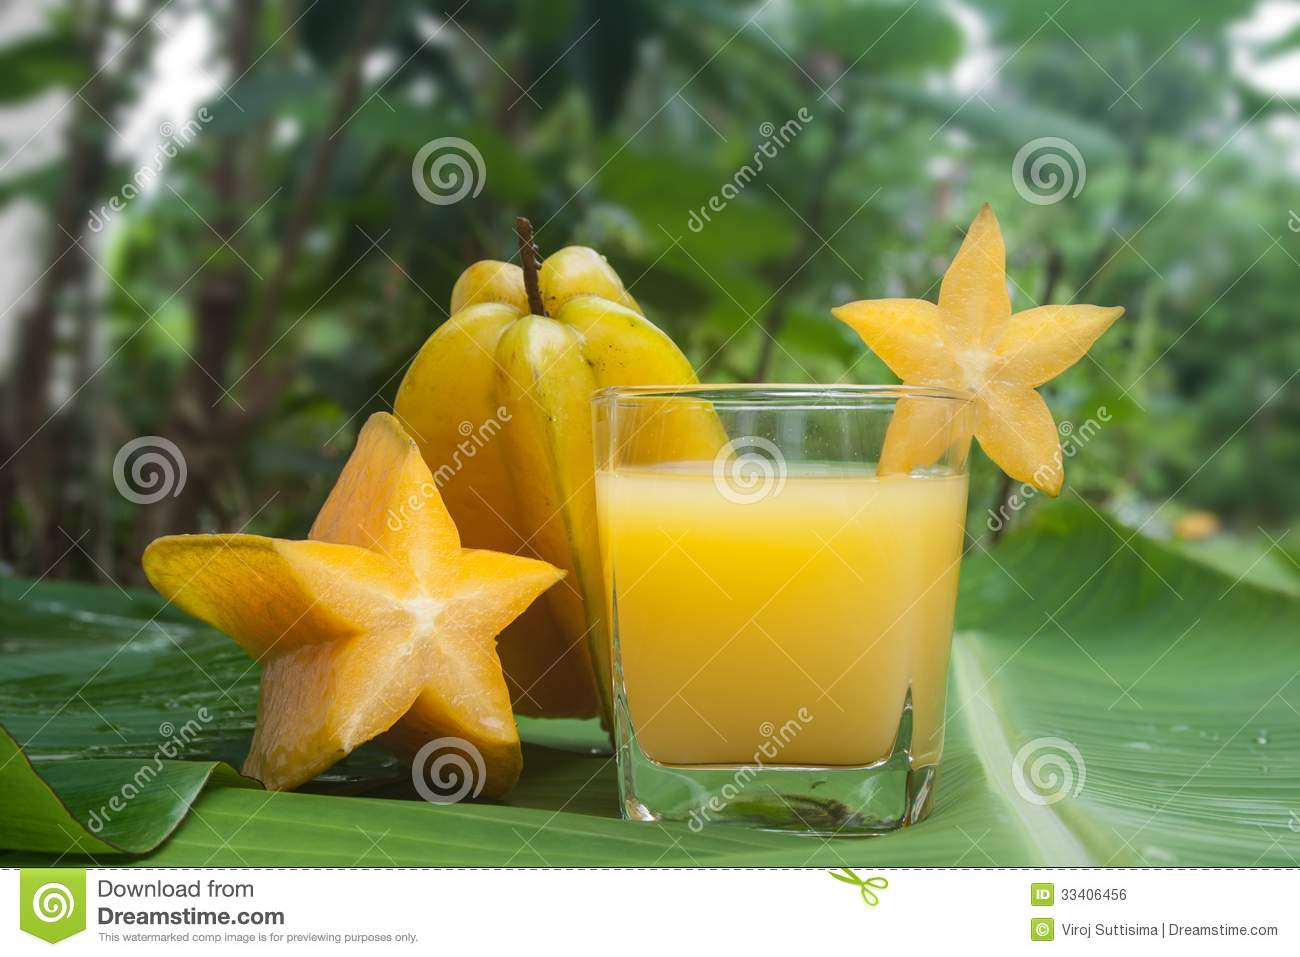 how to eat star fruit is banana a fruit